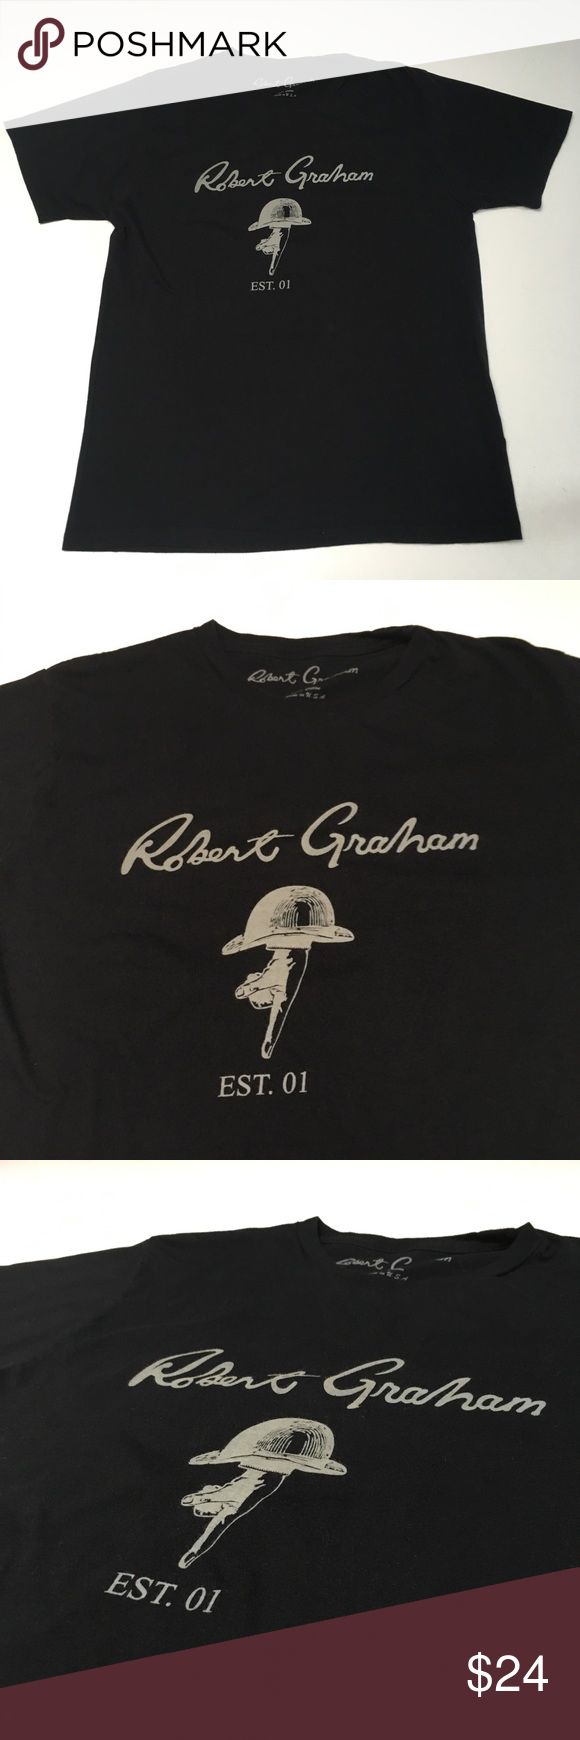 Robert Graham Designer Logo Shirt Tailor Fir Awesome Tee Excellent condition Trusted quality and comfort   Please check measurements in pics for fit reference.     Smoke and pet free storage  Happy to answer any questions    Thanks for looking Robert Graham Shirts Tees - Short Sleeve